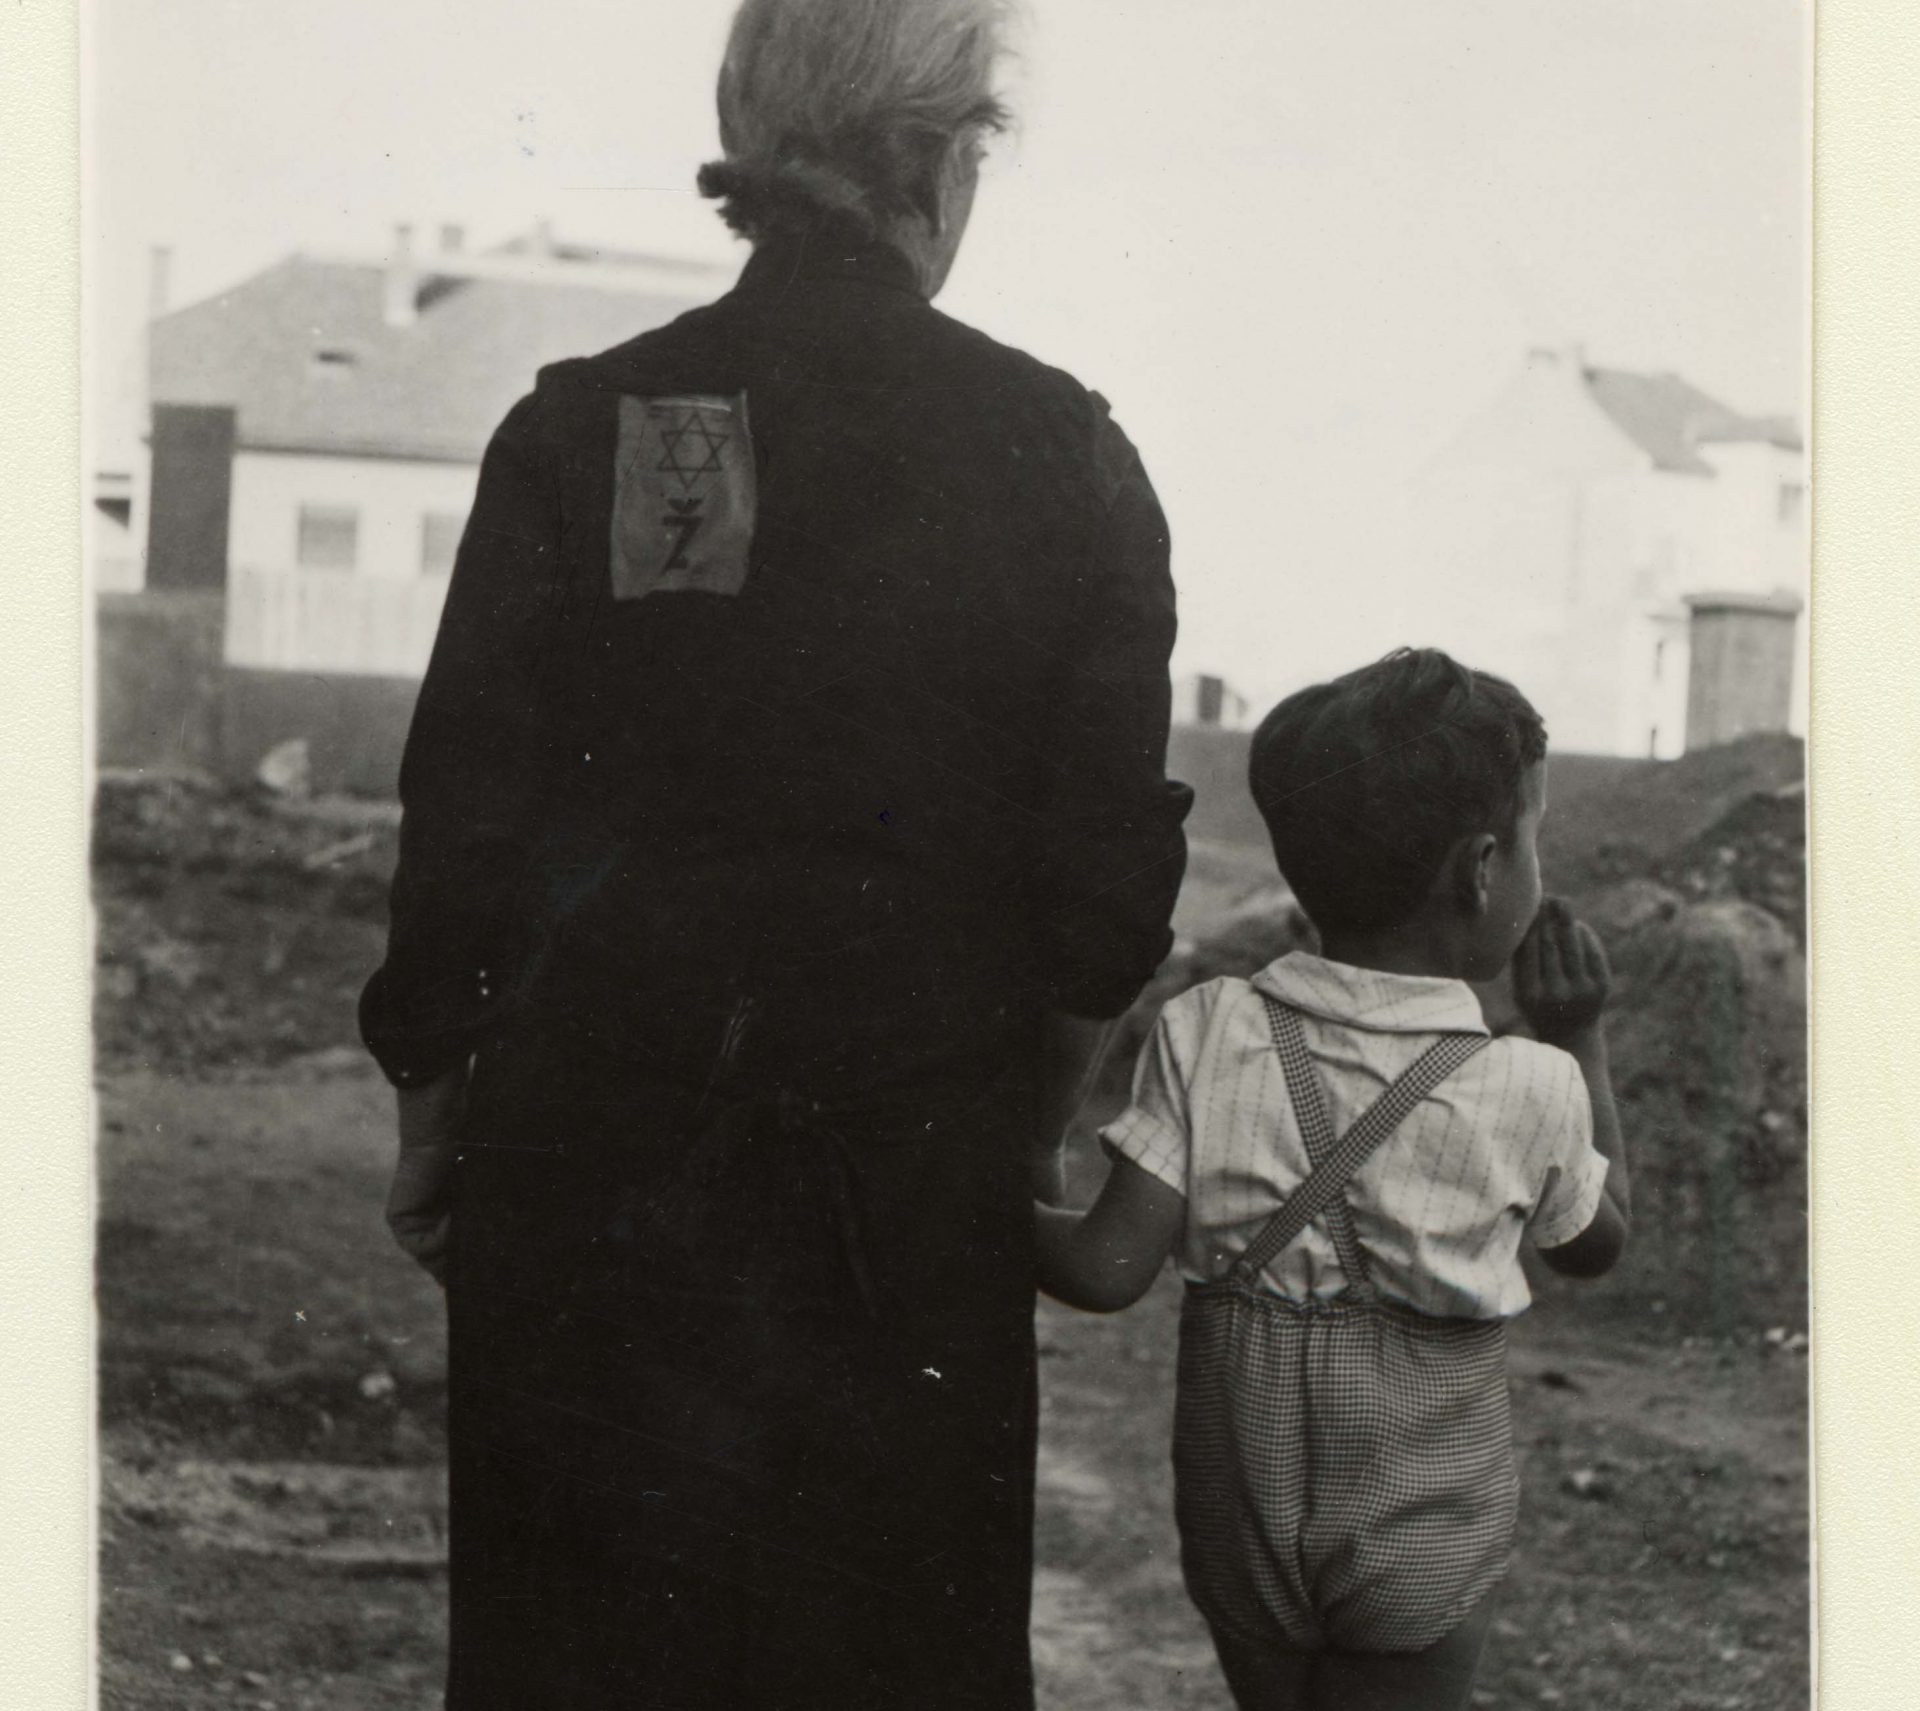 Emil Svarc and his grand-mother, from behind, wearing the yellow badge on her dress.